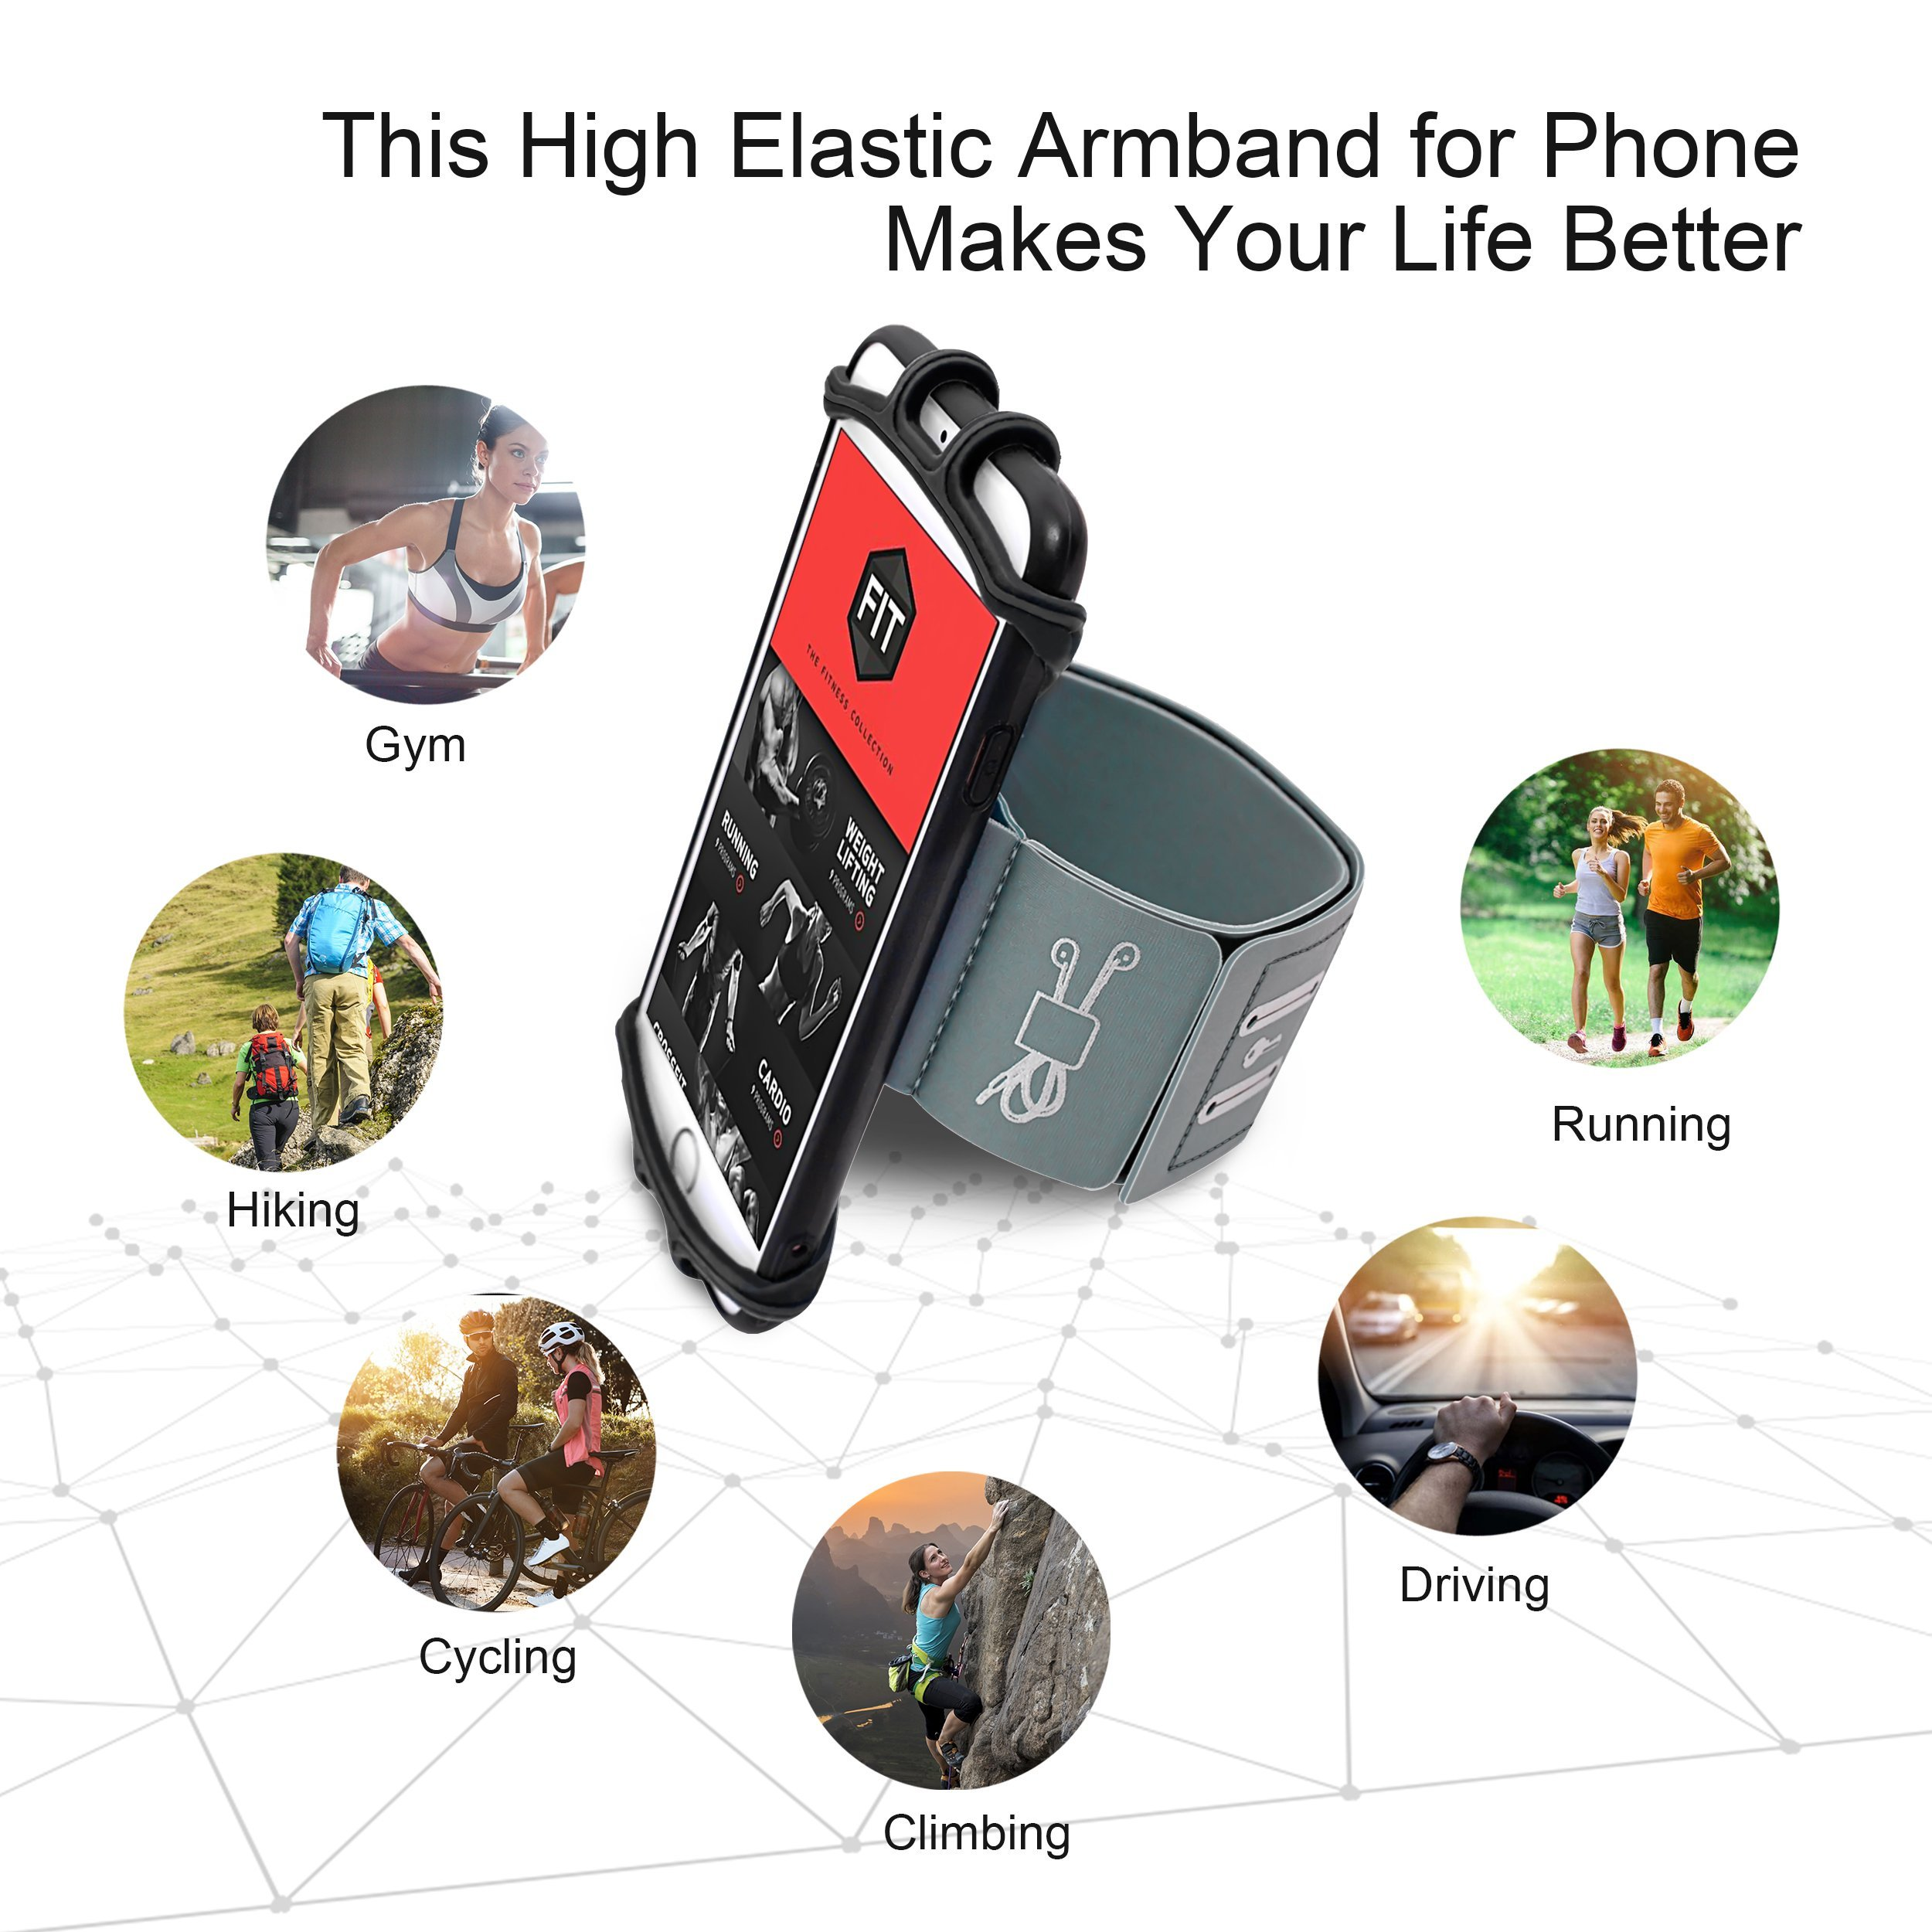 Running Armband for iPhone X/iPhone 8 Plus/ 8/7 Plus/ 6 Plus/ 6, Galaxy S8/ S8 Plus/ S7 Edge, Note 8 5, Google Pixel with Key Holder Phone Armband for Hiking Biking Walking Running(Black) by CICO (Image #7)